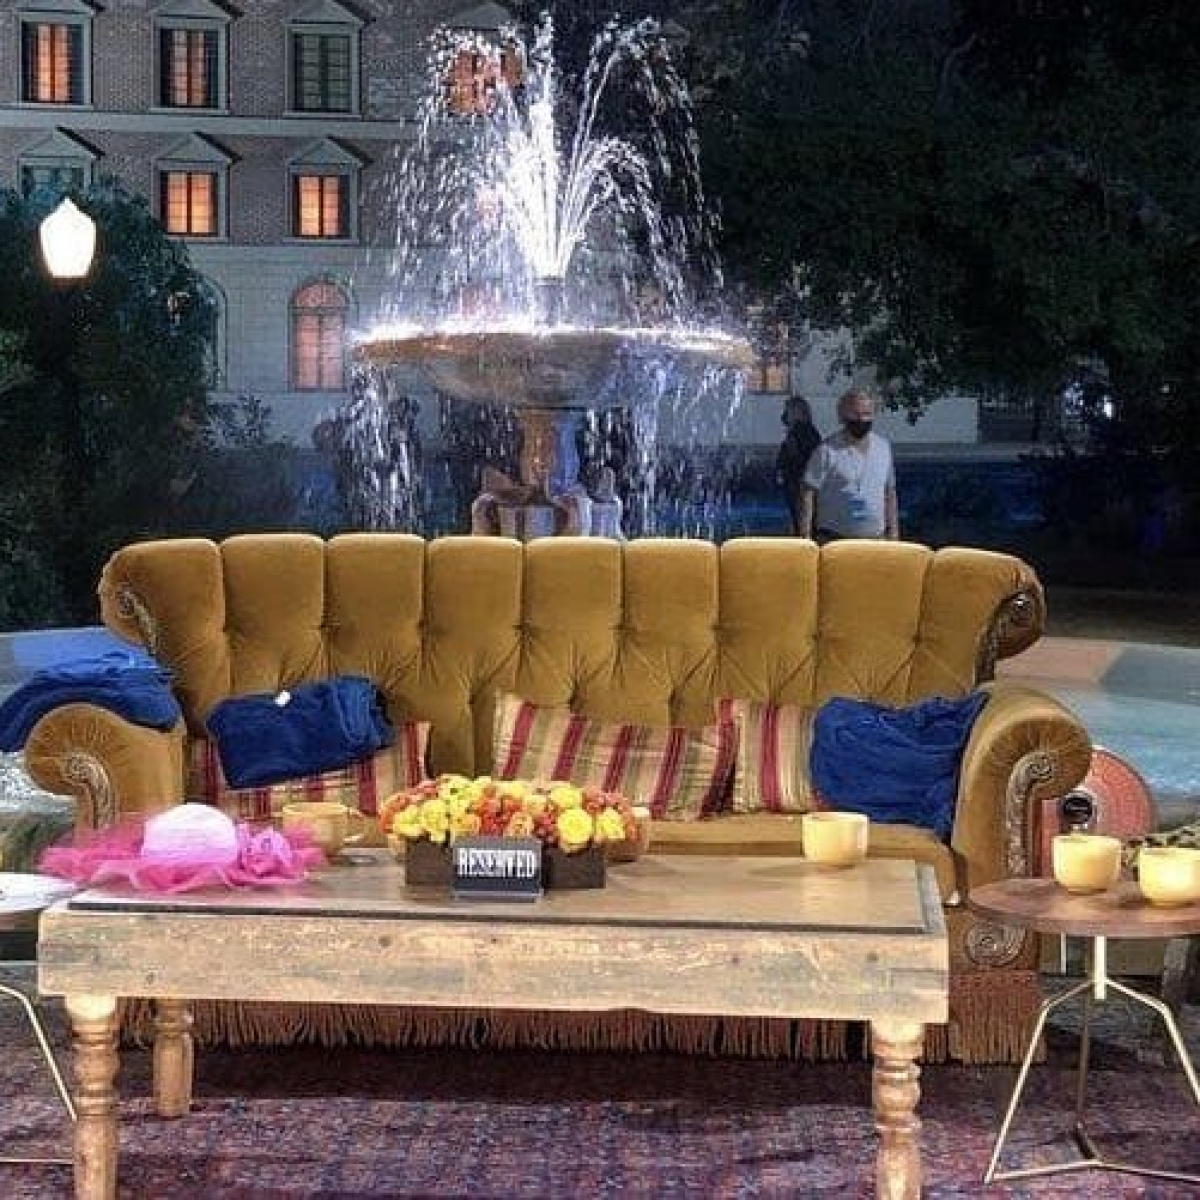 'Friends reunion' to use original stage, fountain for the nostalgic sequel